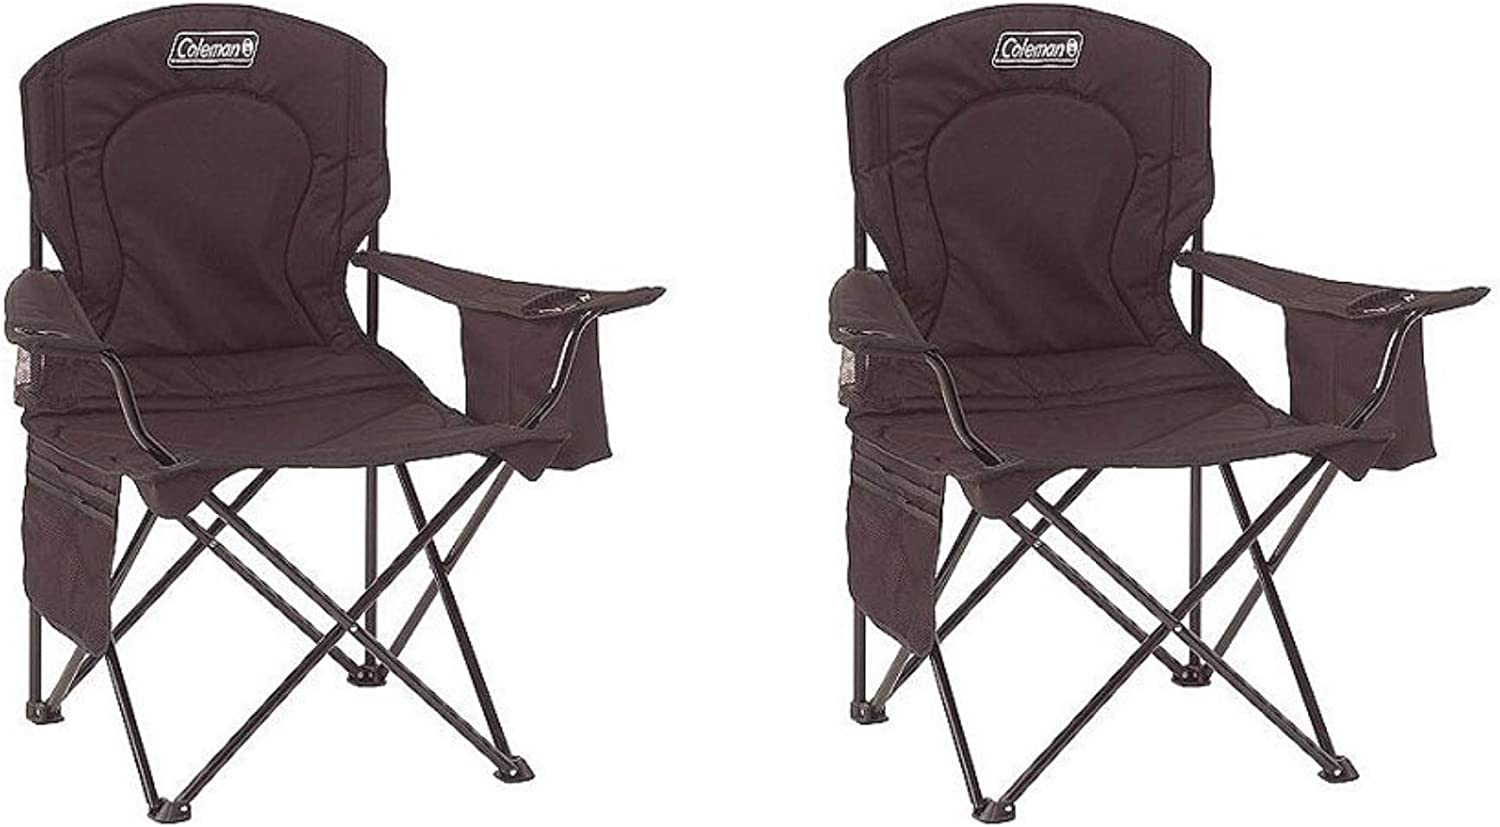 Coleman Portable Camping Quad Chair with 4-Can Cooler 2000020267